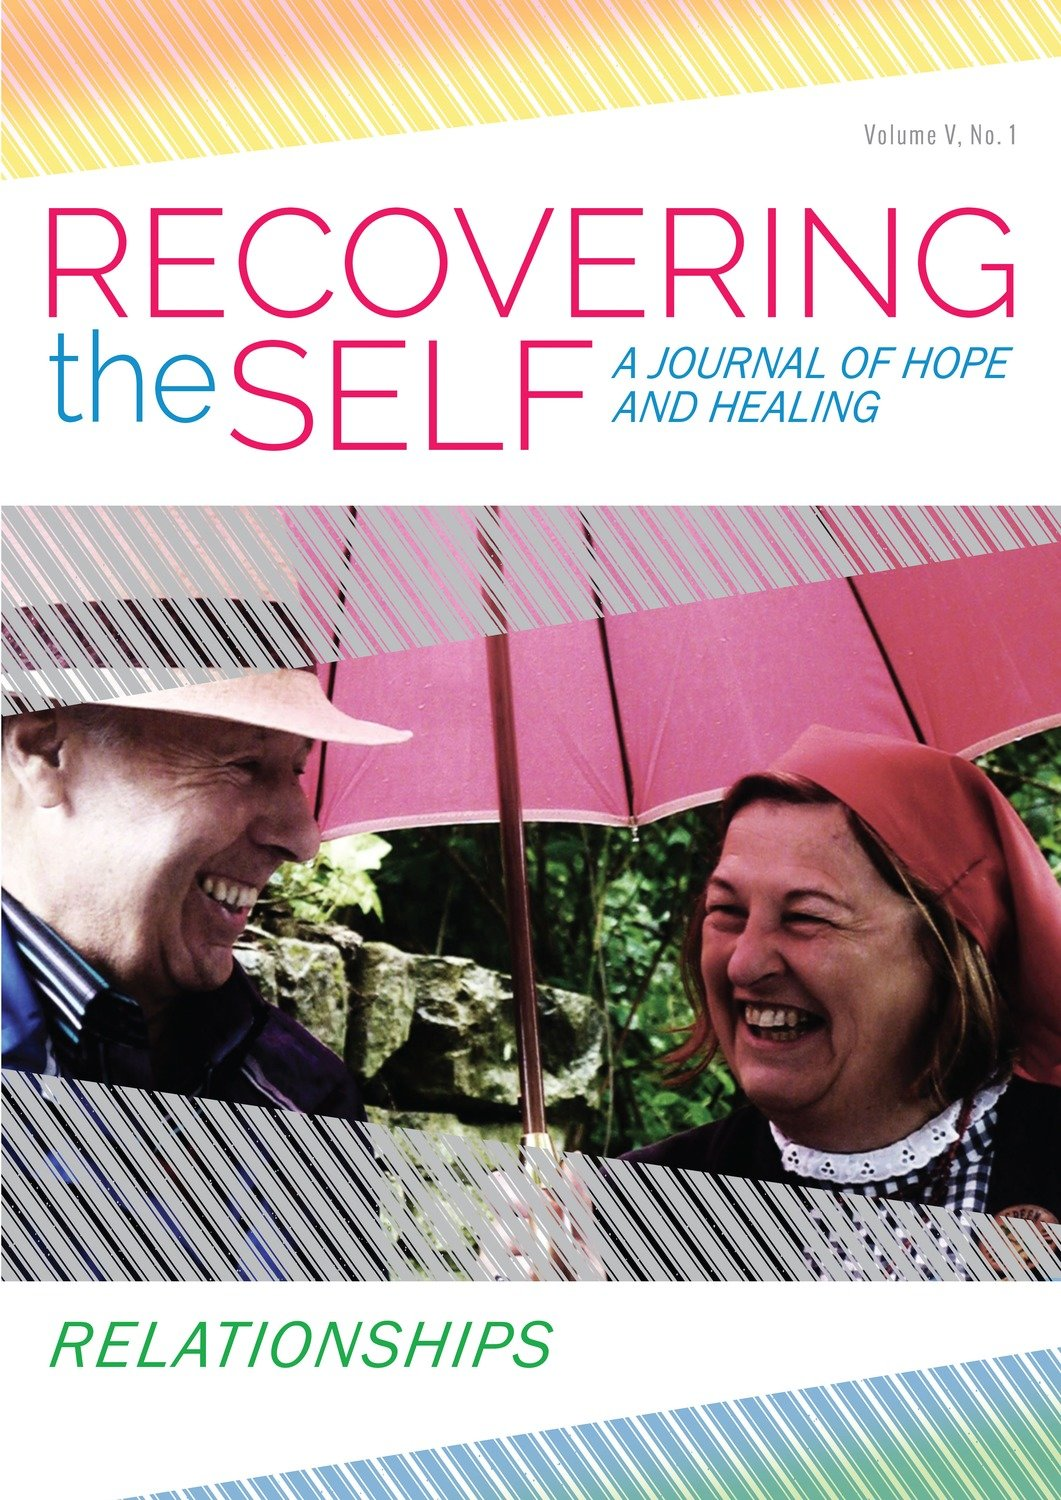 Recovering The Self: A Journal of Hope and Healing (Vol. V, No. 1 )-- Focus on Relationships